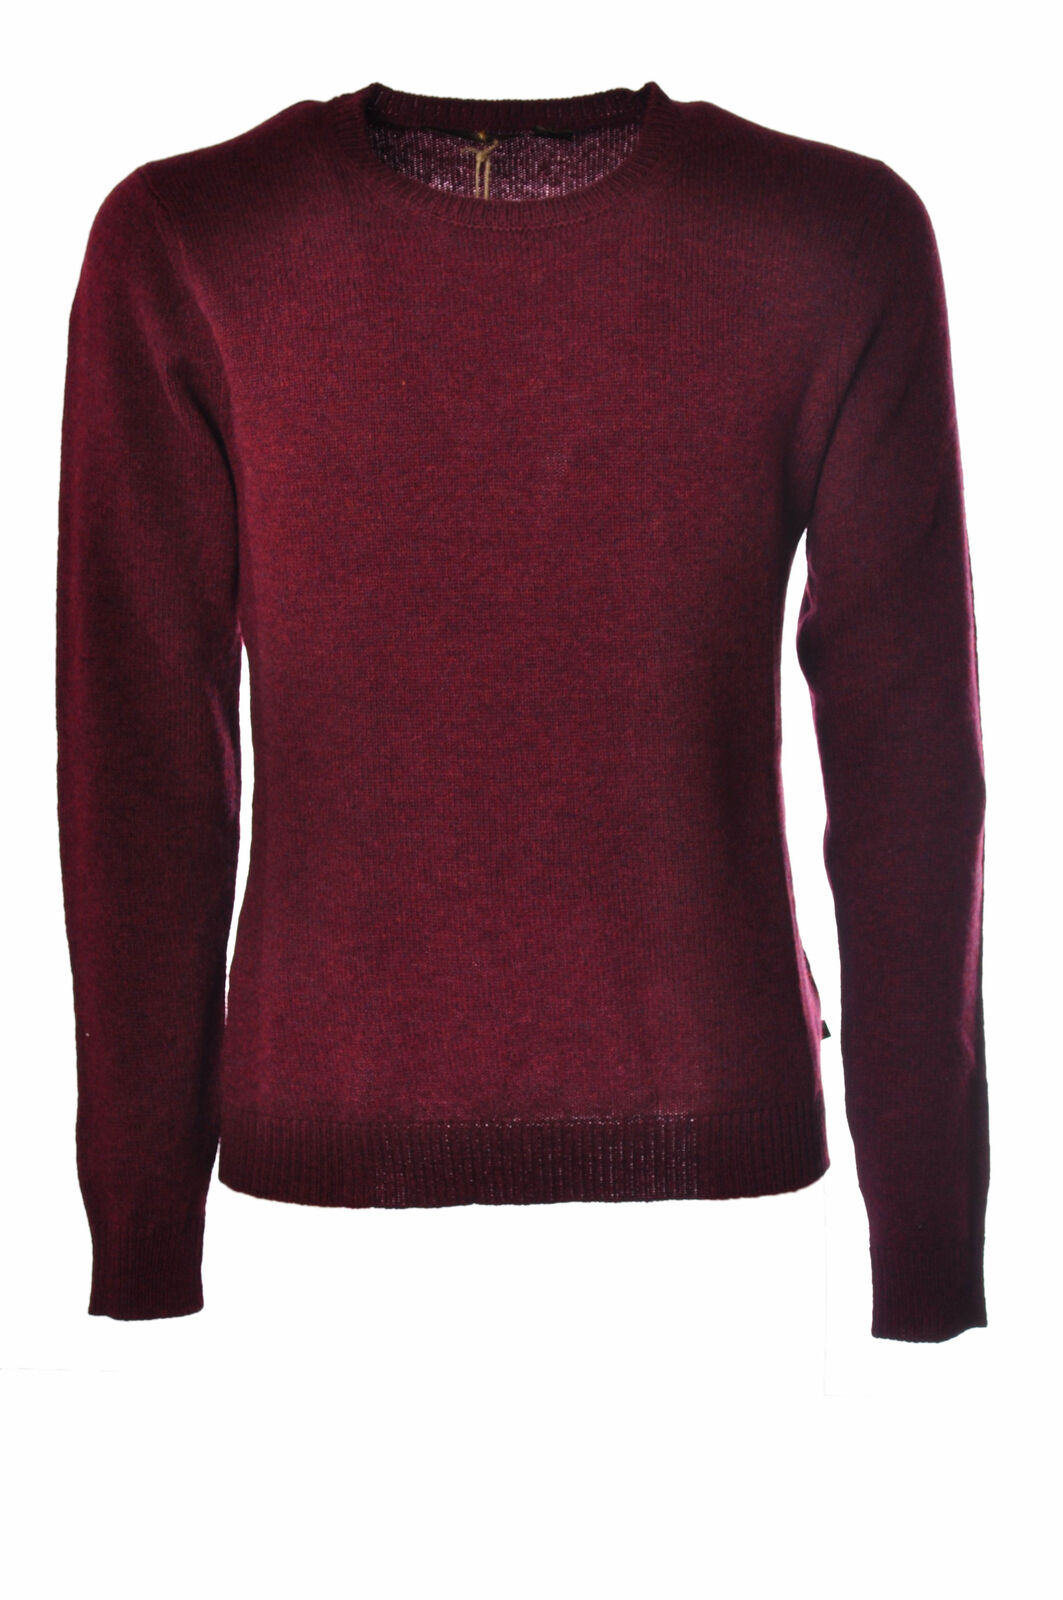 Irish Crone  -  Sweaters - Male - ROT - 2510126N173402